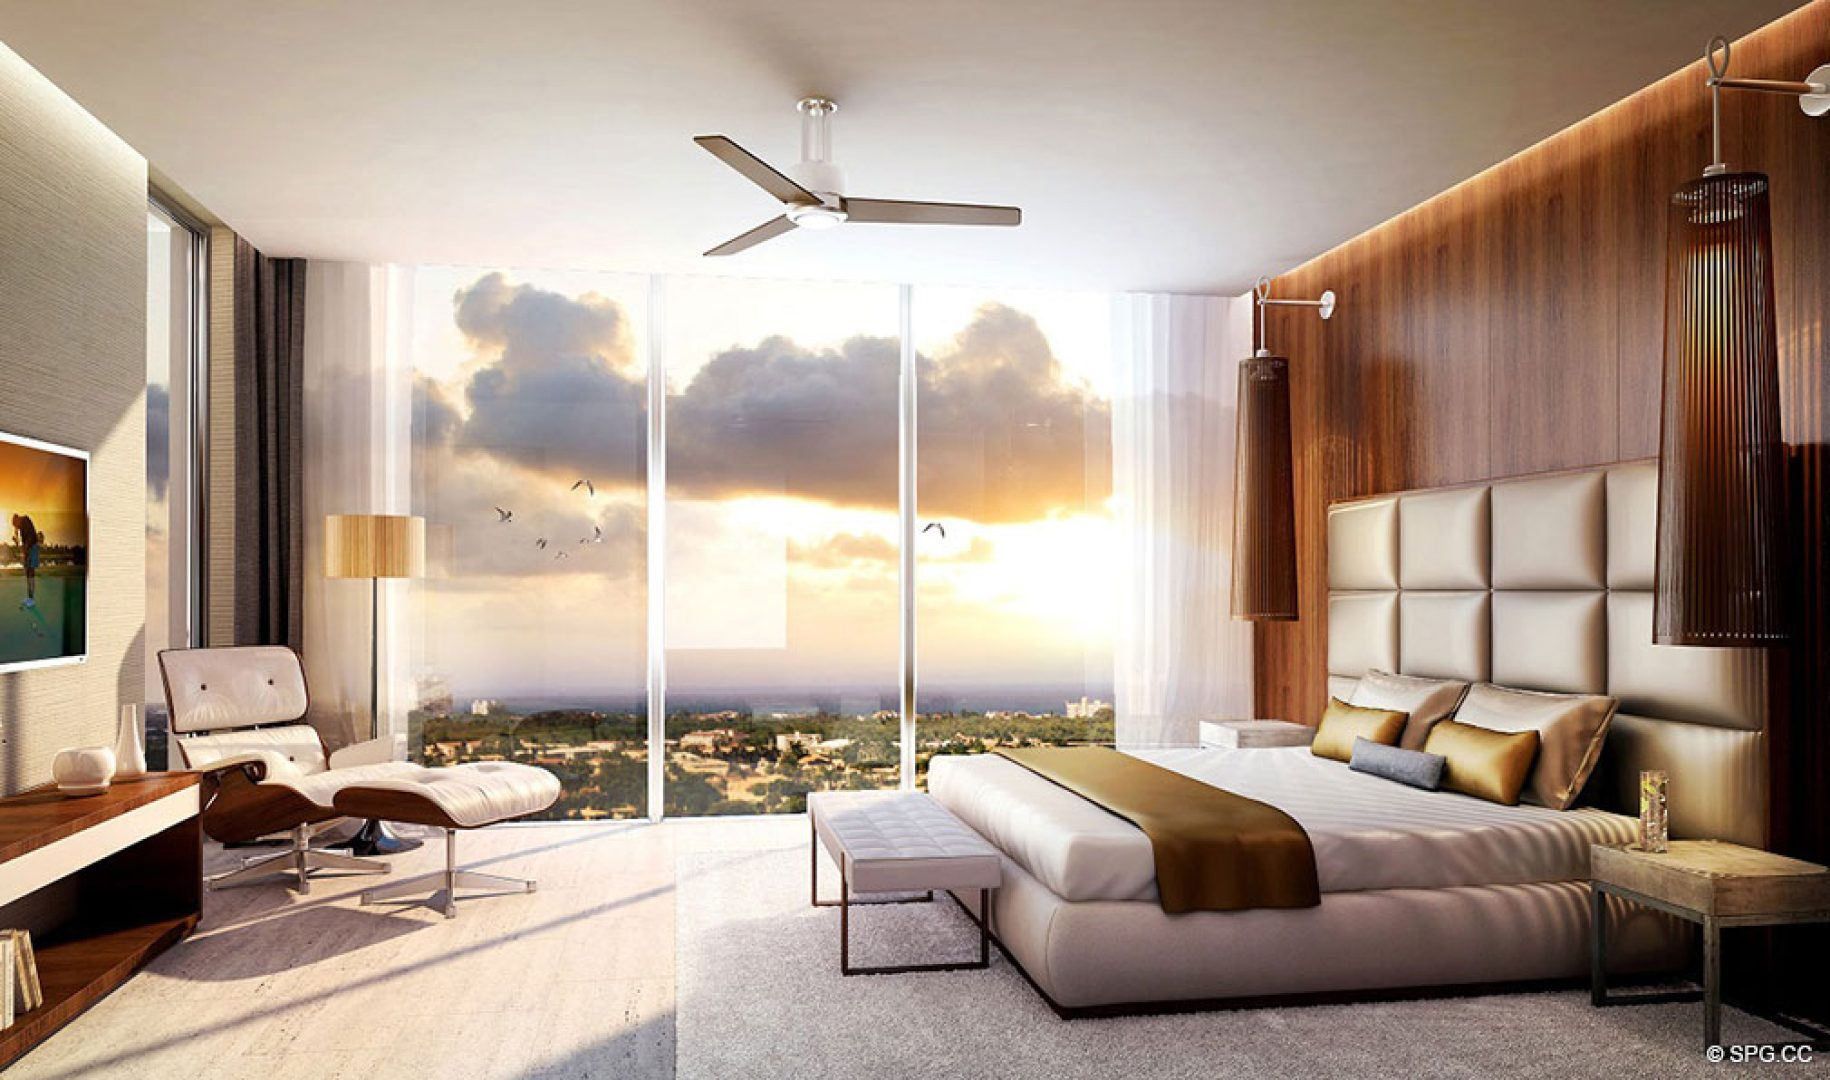 Exquisite Bedroom Suites inside AquaLuna Las Olas, Luxury Waterfront Condos in Fort Lauderdale, Florida 33301